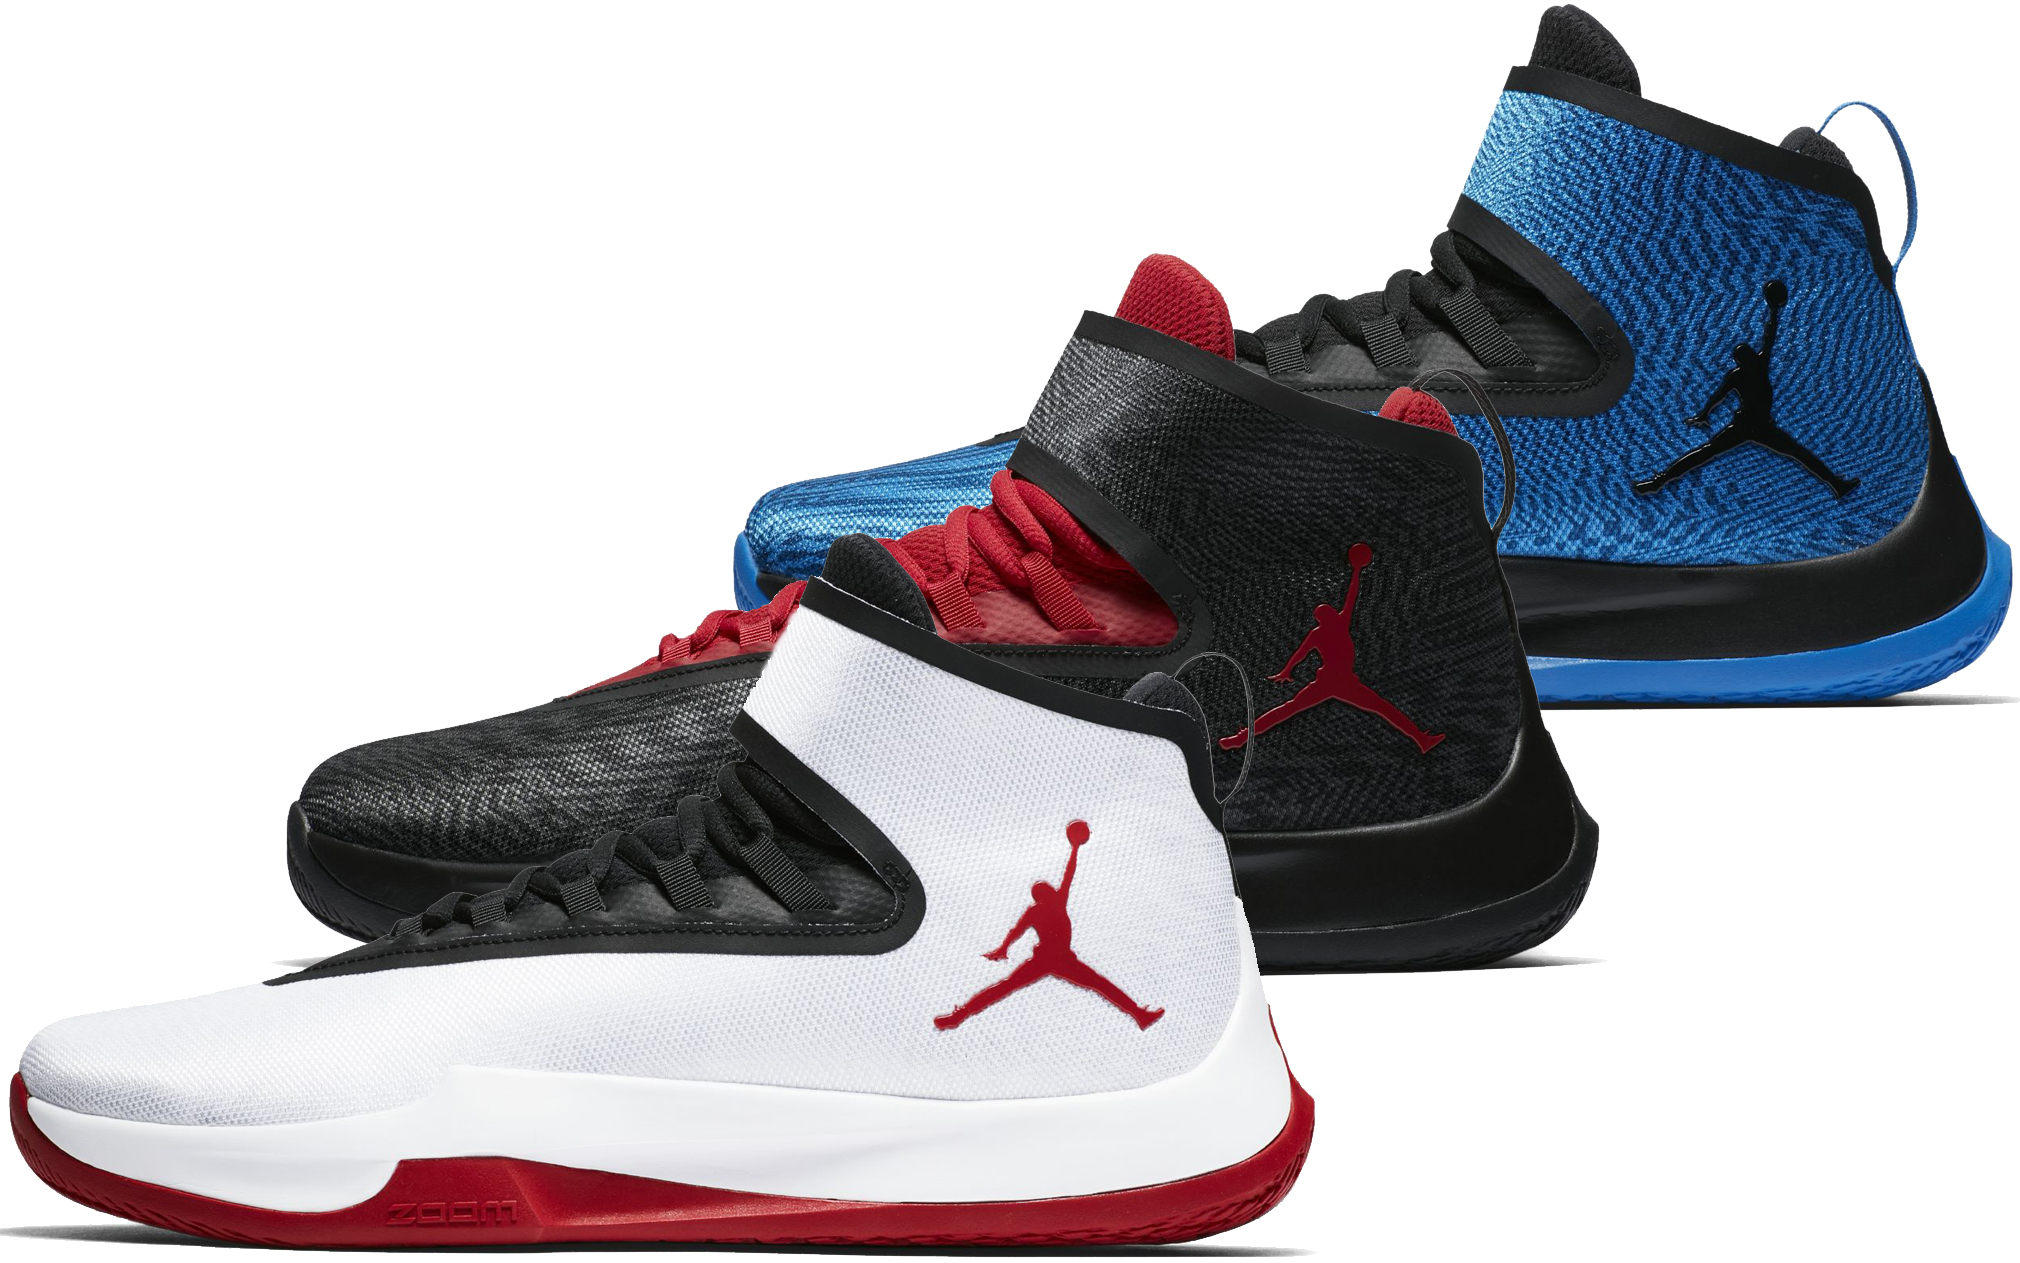 Baya Destreza Intento  Take a Look at Three Upcoming Jordan Fly Unlimited Colorways - WearTesters